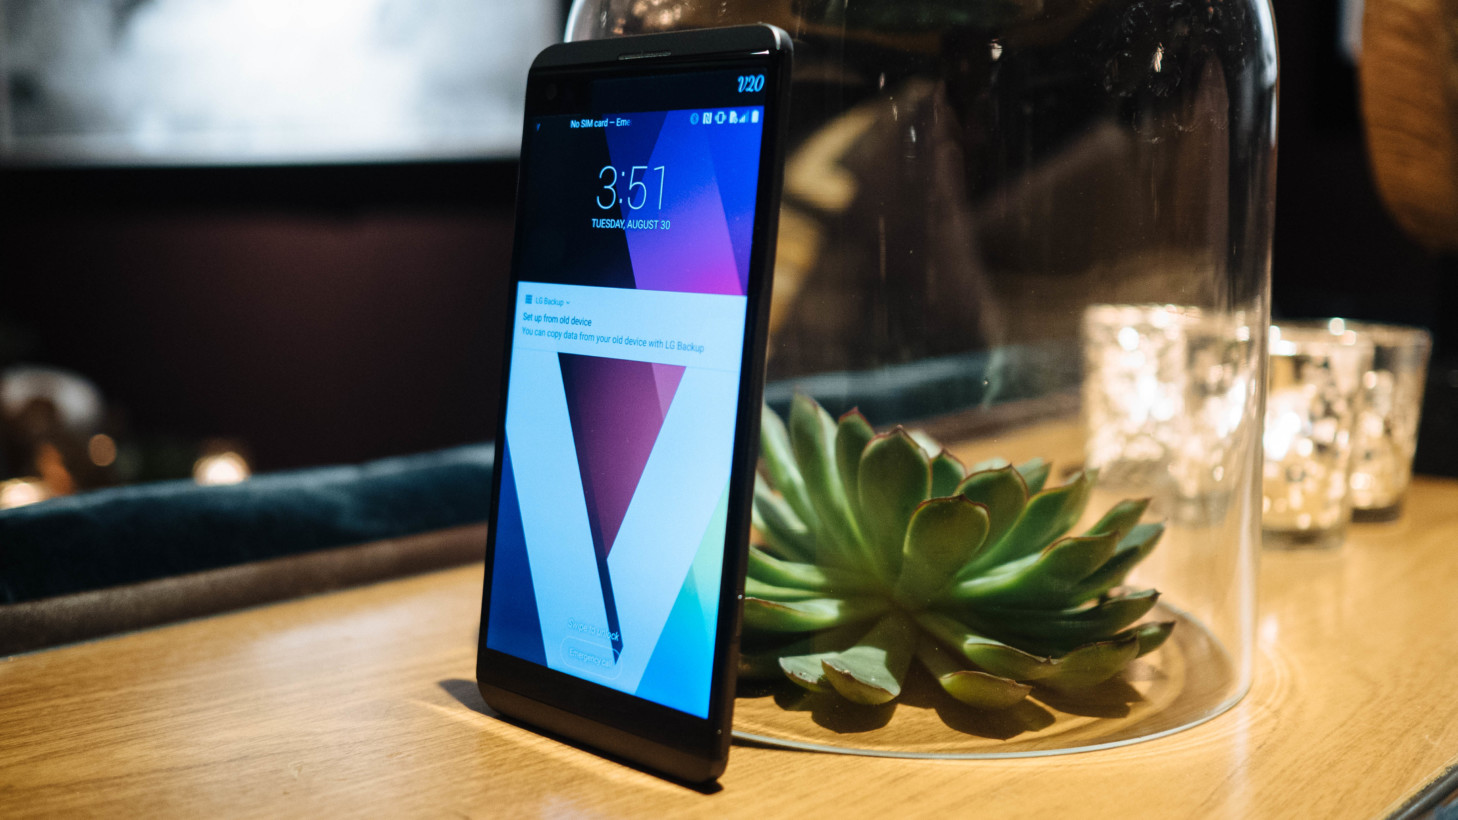 LG's V20 is a multimedia beast with a removable battery